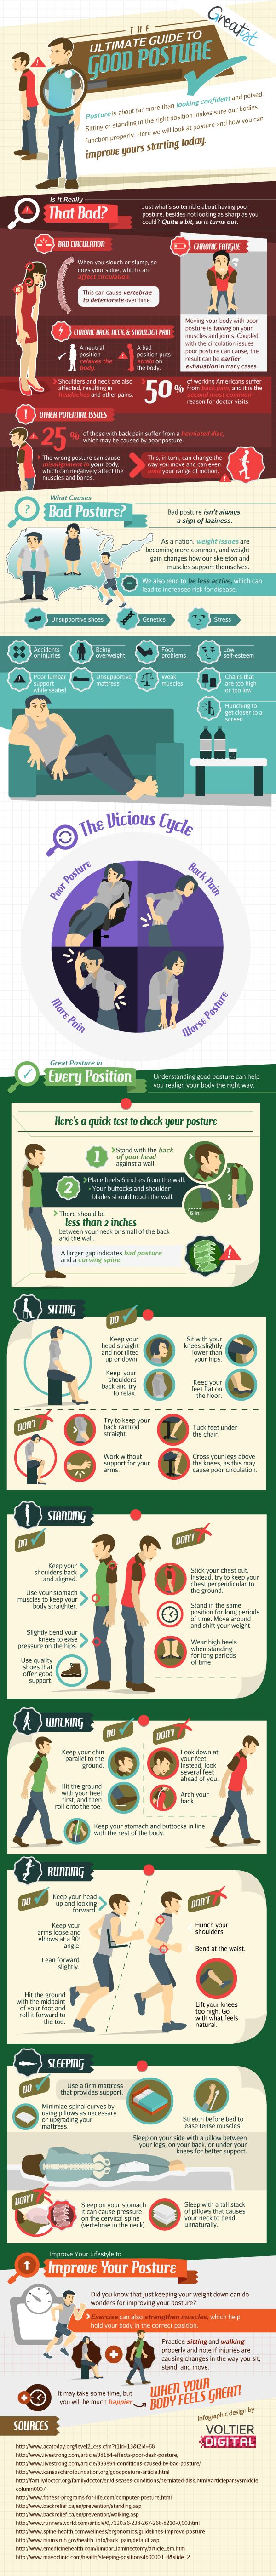 The ultimate guide to good posture: #wellnesswednesday